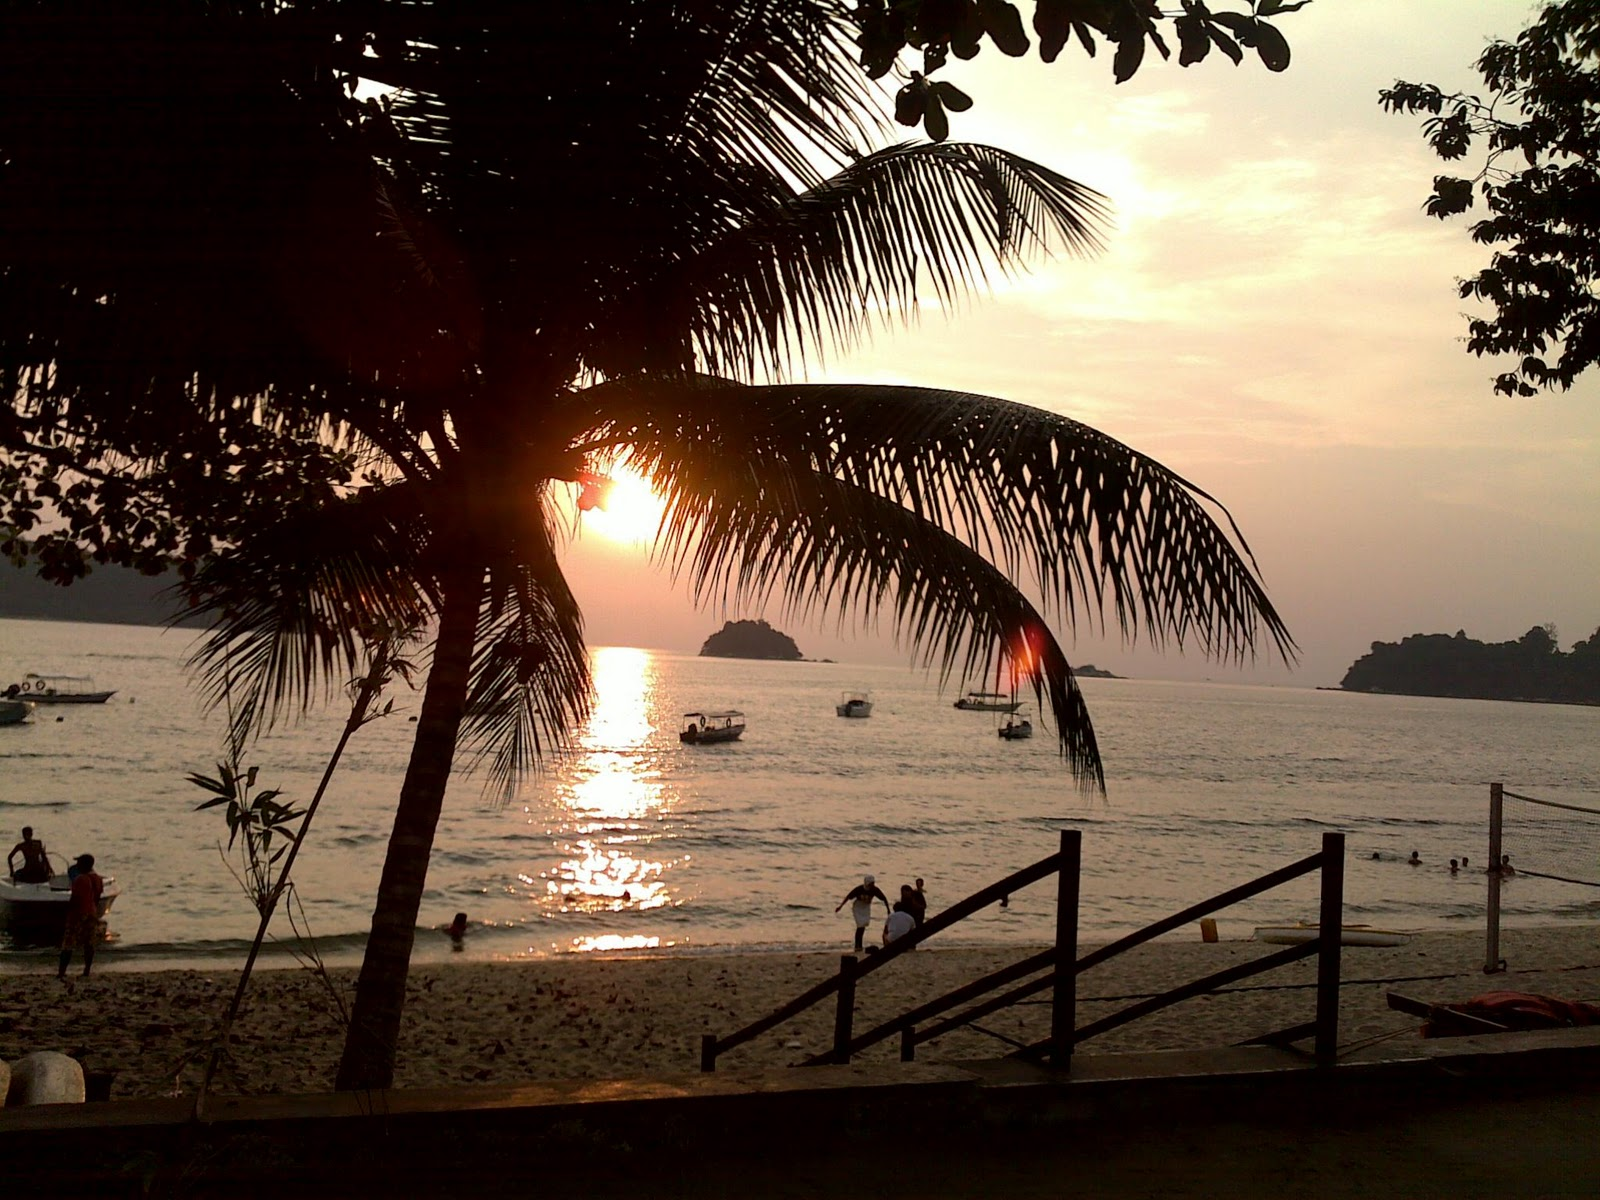 pangkor island trip I went on a 3 days 2 nights trip to pangkor island with my best friend, shamzzy i am delighted to share my experience and the details of my entire trip.